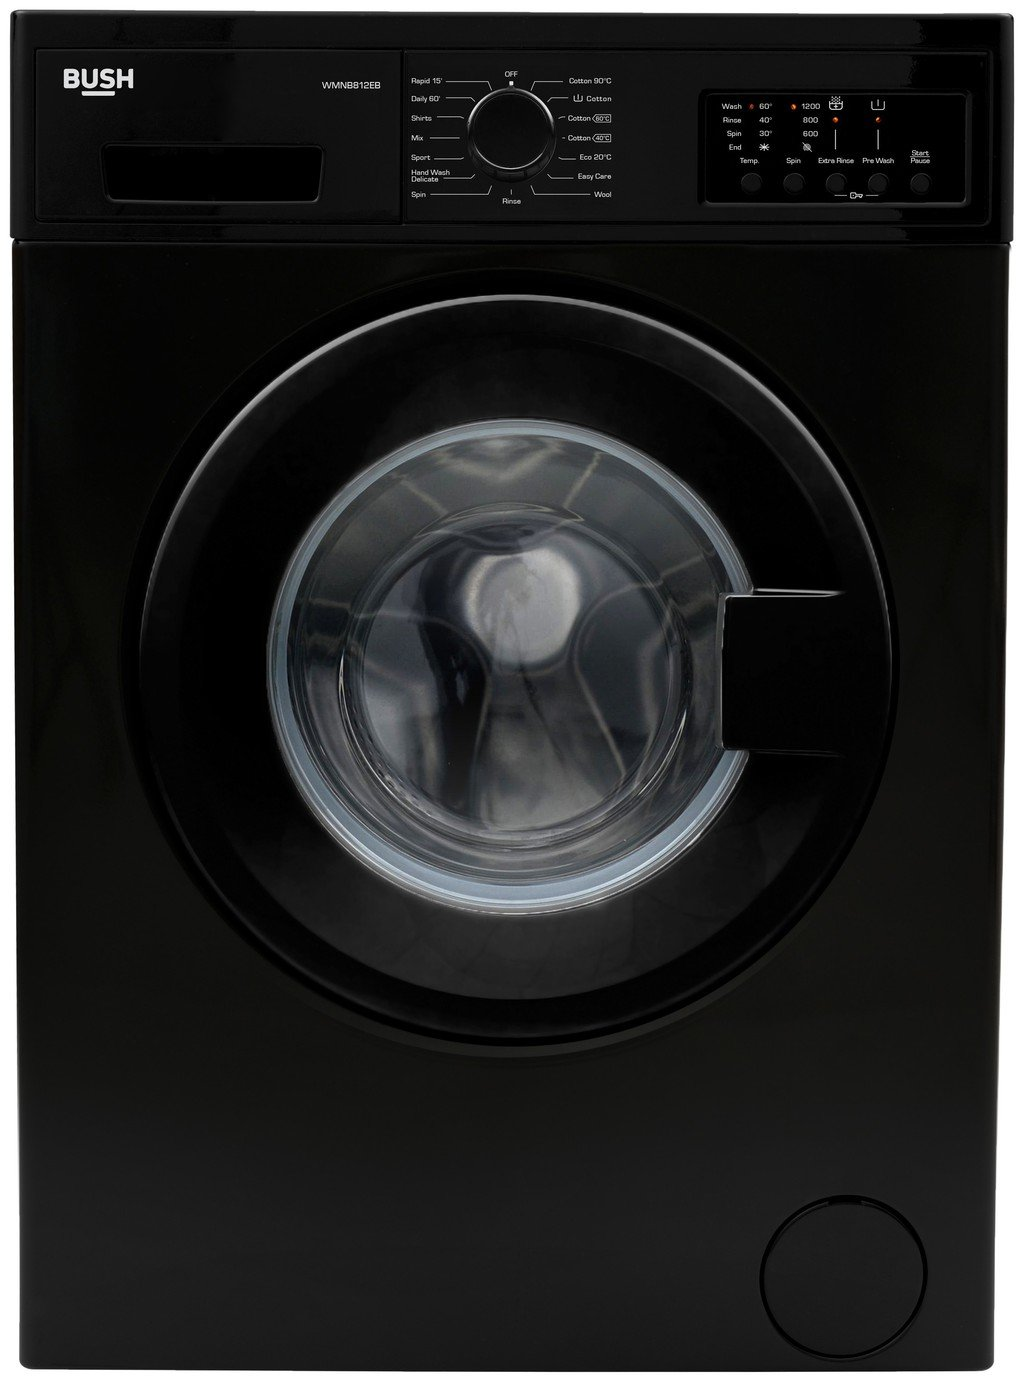 Bush WMNB812EB 8KG 1200 Spin Washing Machine - Black Best Price, Cheapest Prices